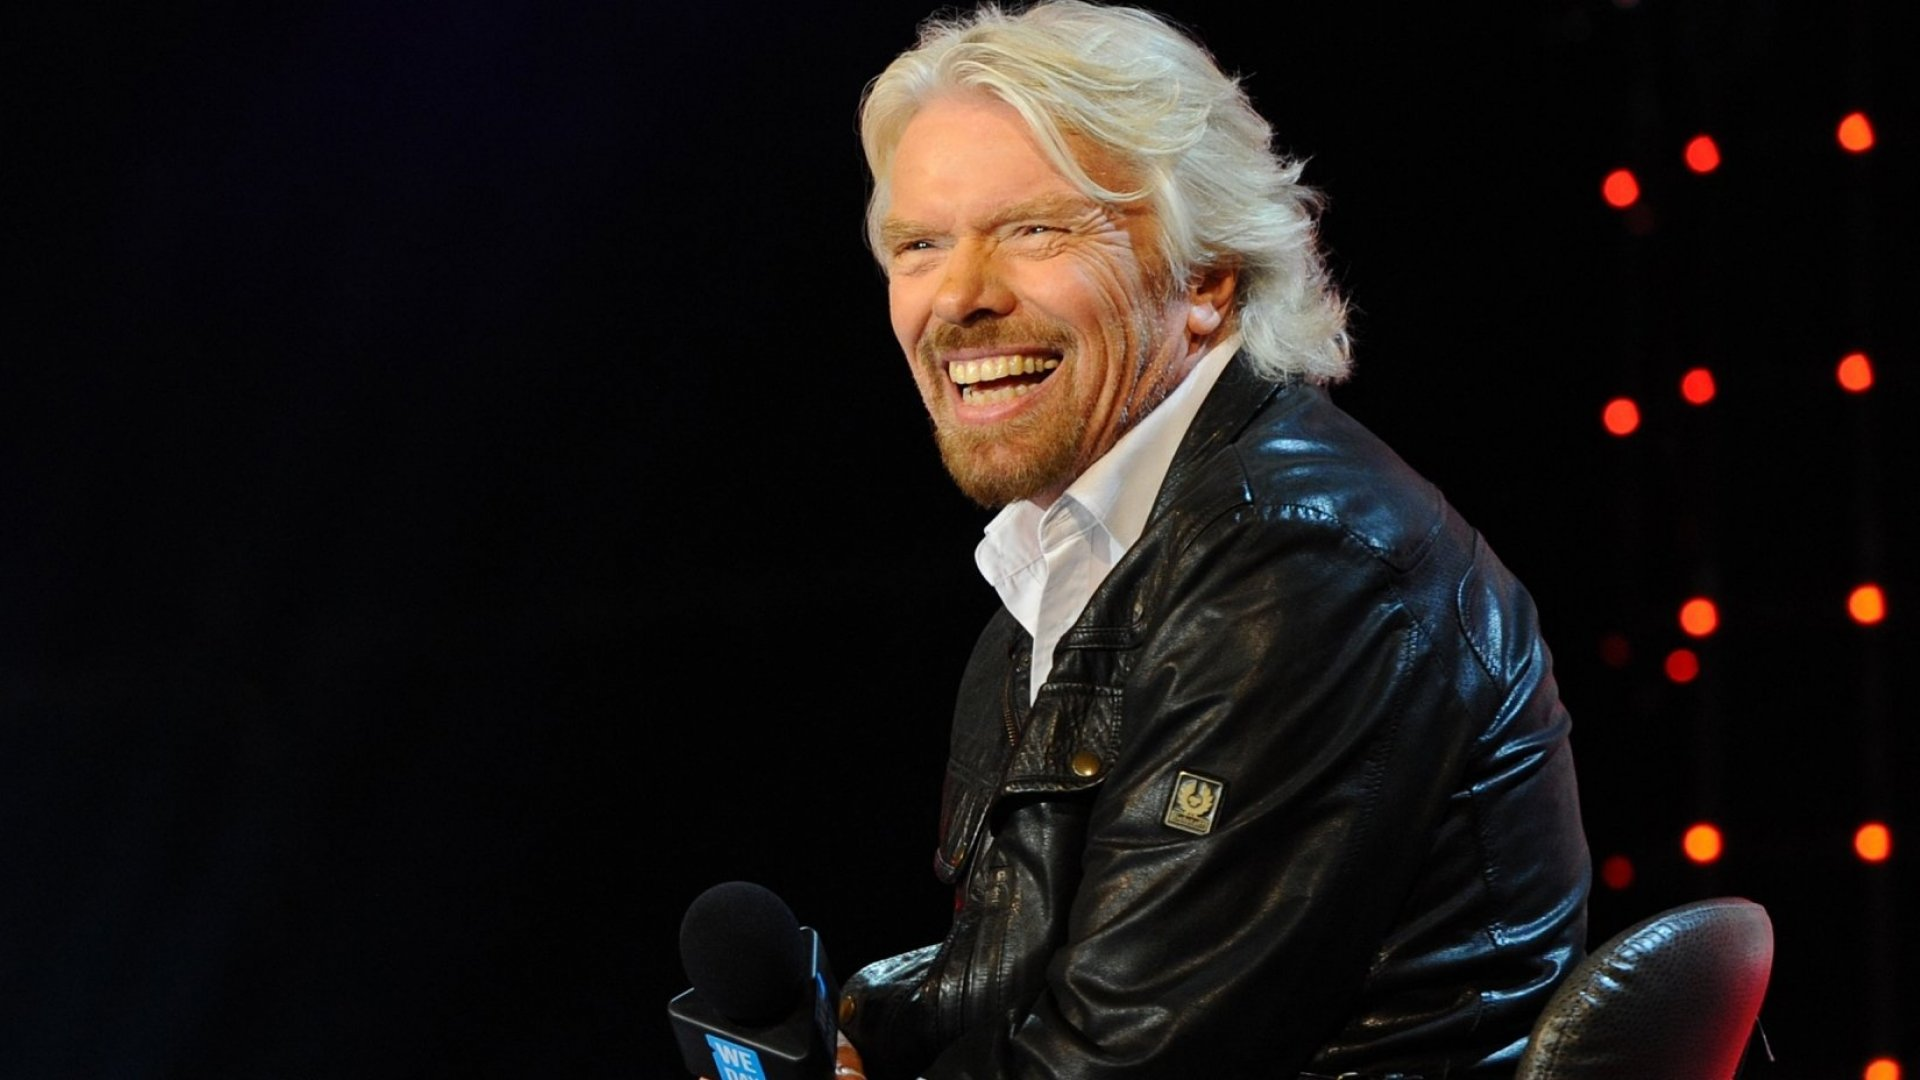 And Then Richard Branson Gave Me Half a Sandwich: The Power of Simple Courtesy